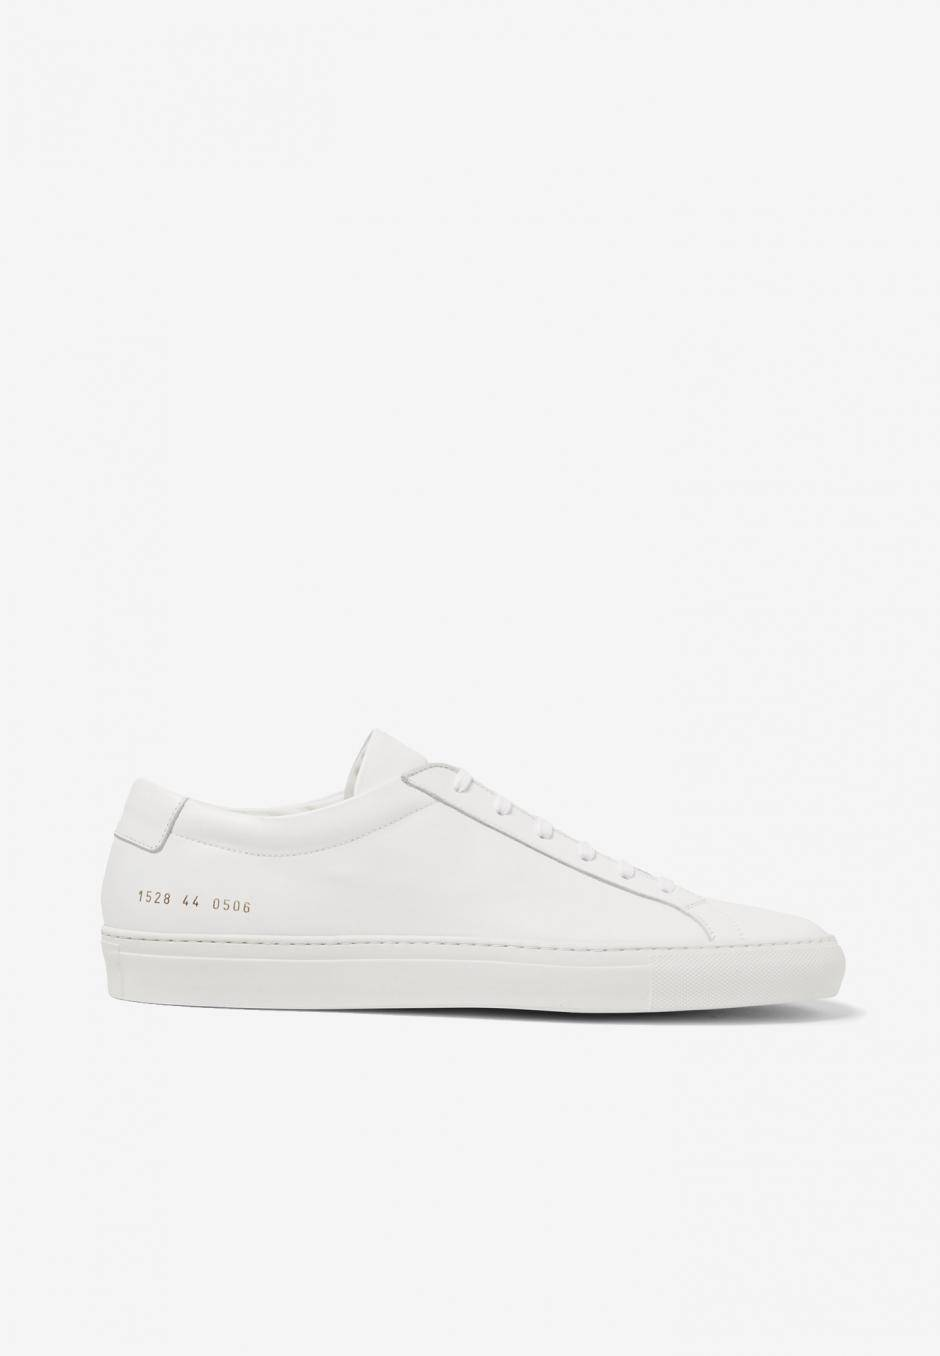 Common Projects Original Achilles Leather White